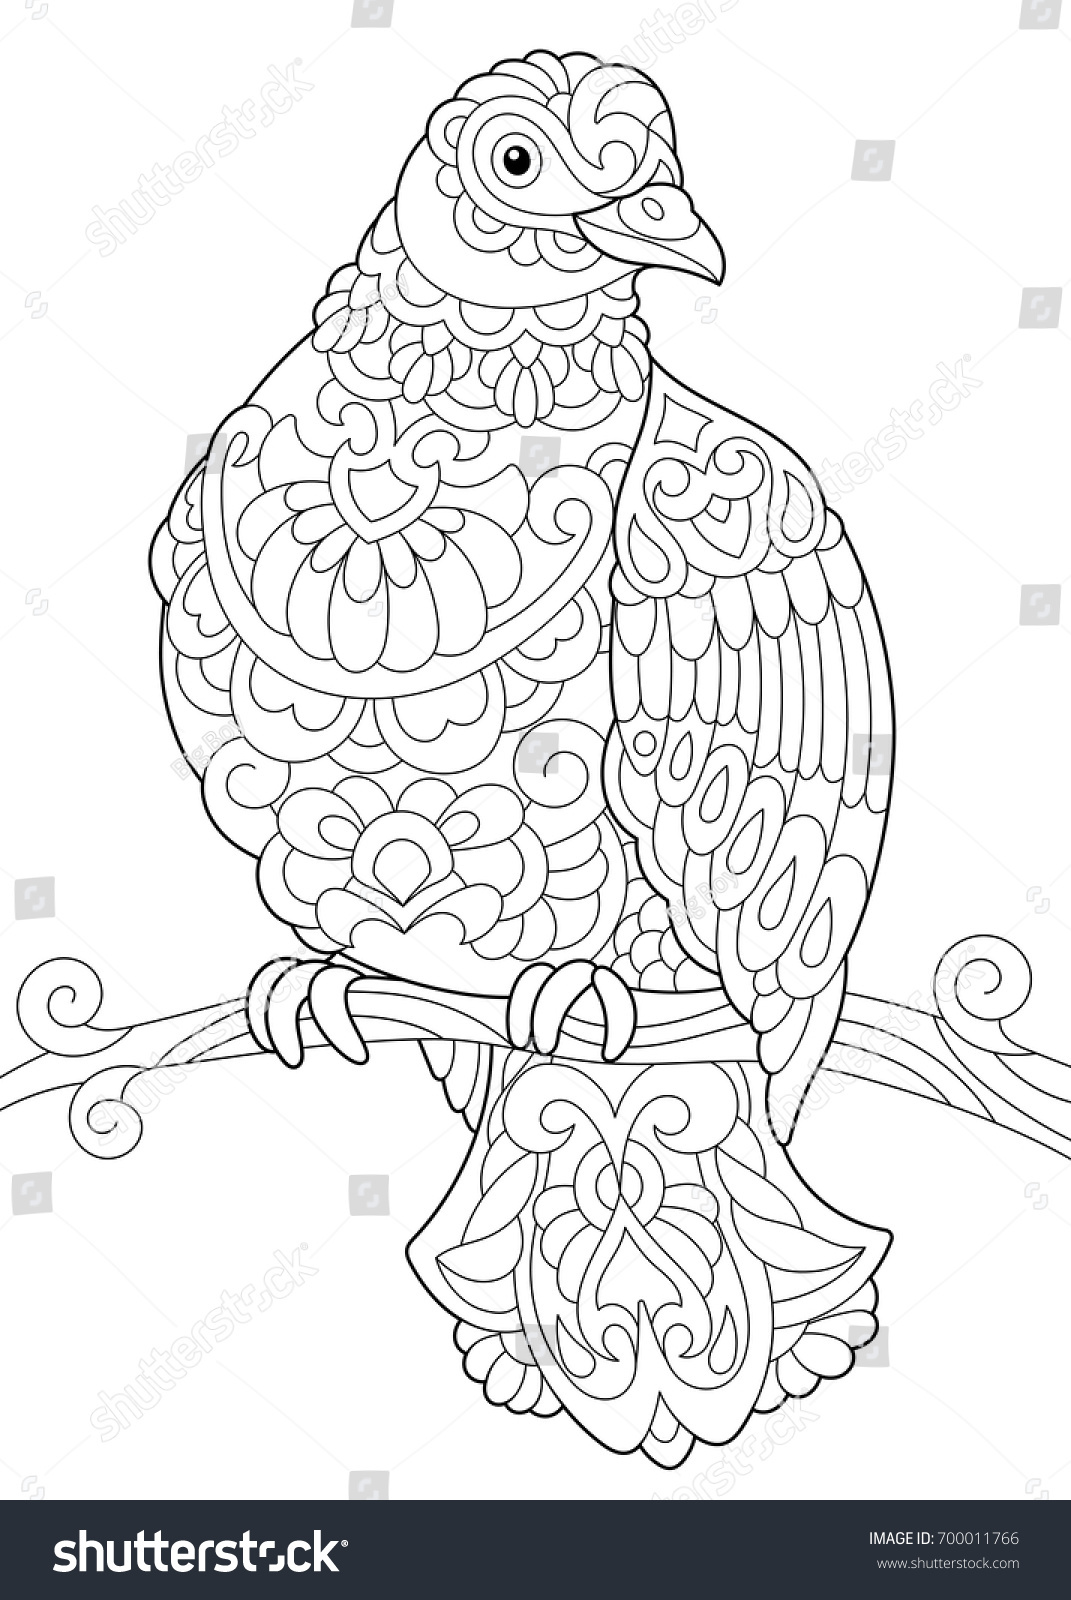 Coloring Page Of Dove Pigeon Bird Sitting On Tree Branch Freehand Sketch Drawing